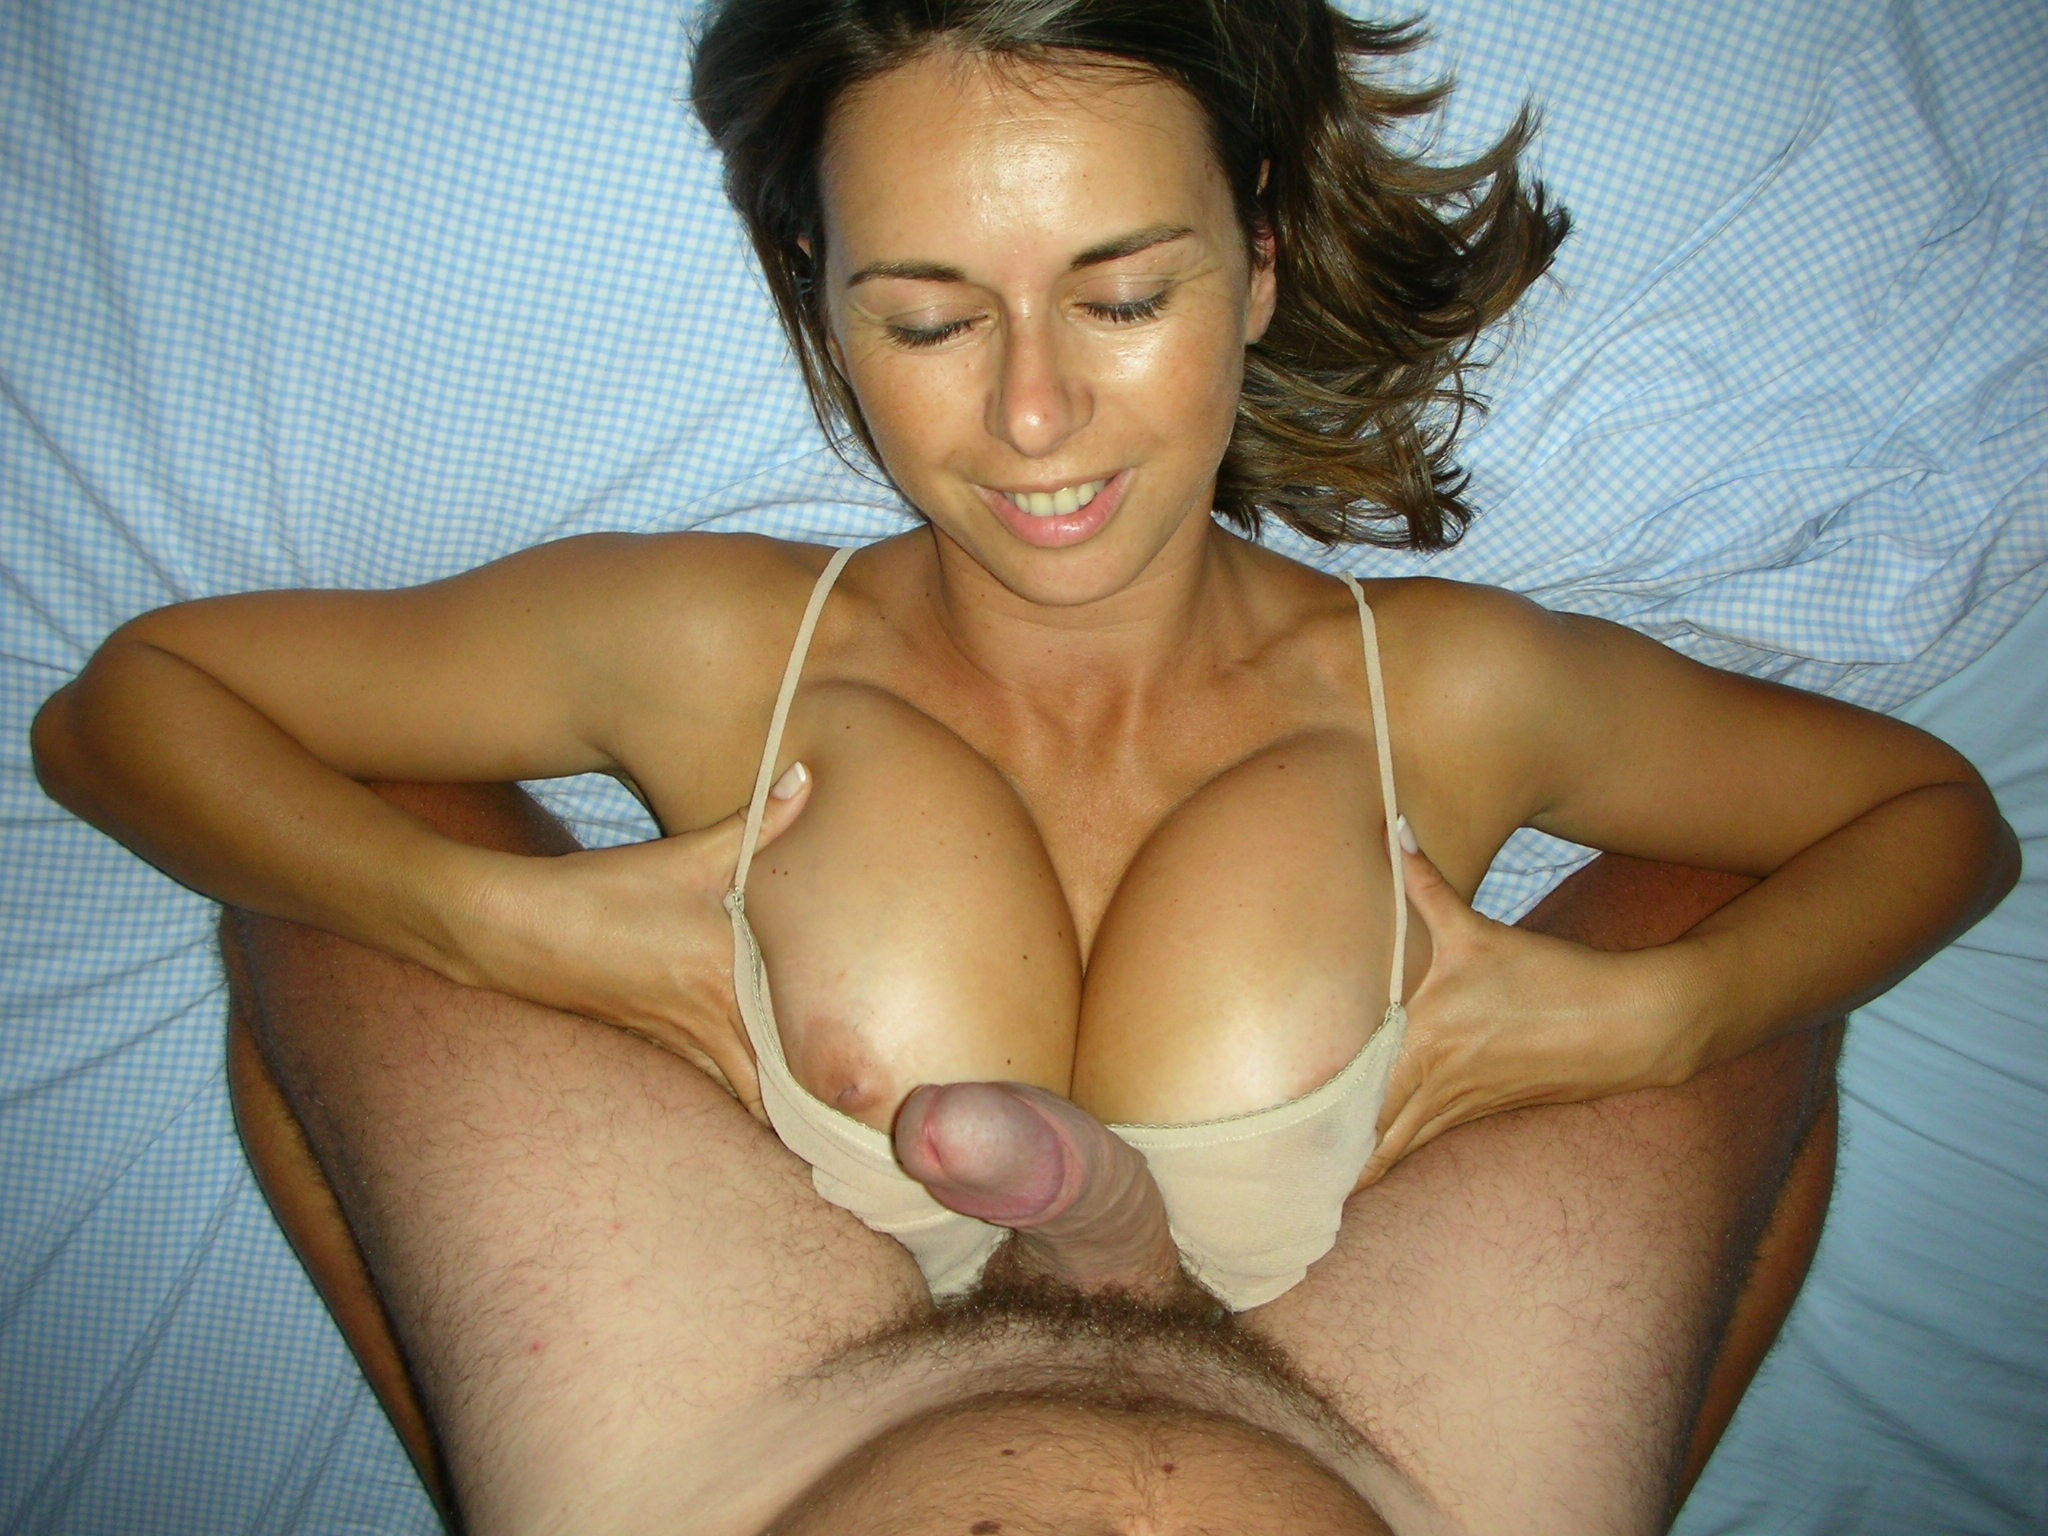 Motorboating a pair of big boobs with your cock